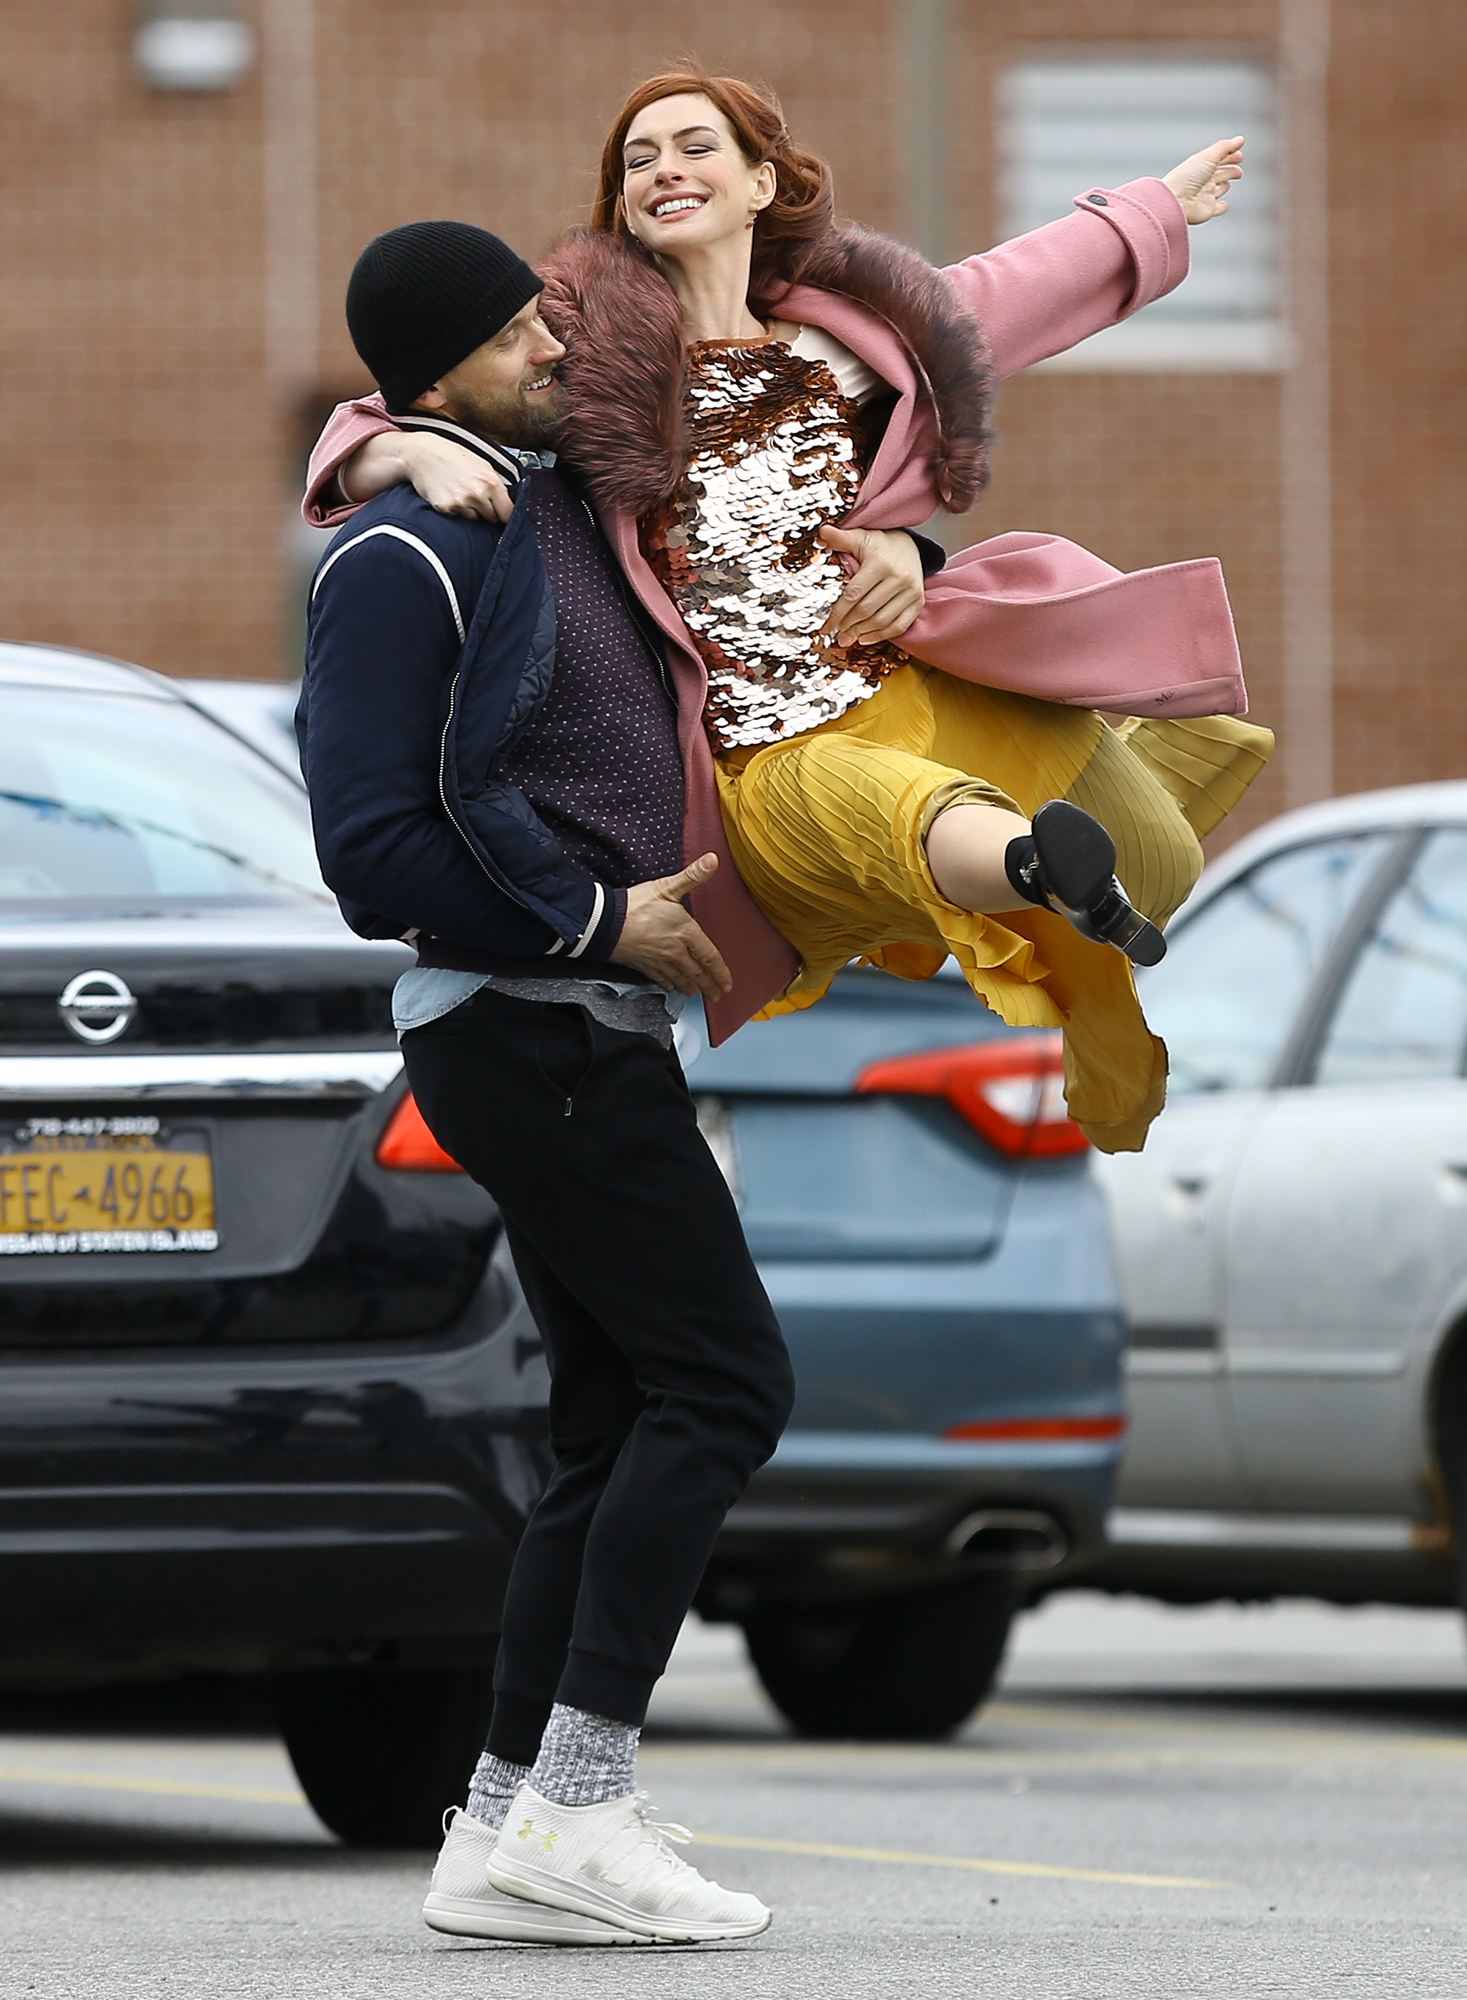 Red-Headed Anne Hathaway Dances In A Parking Lot Filming In Brooklyn